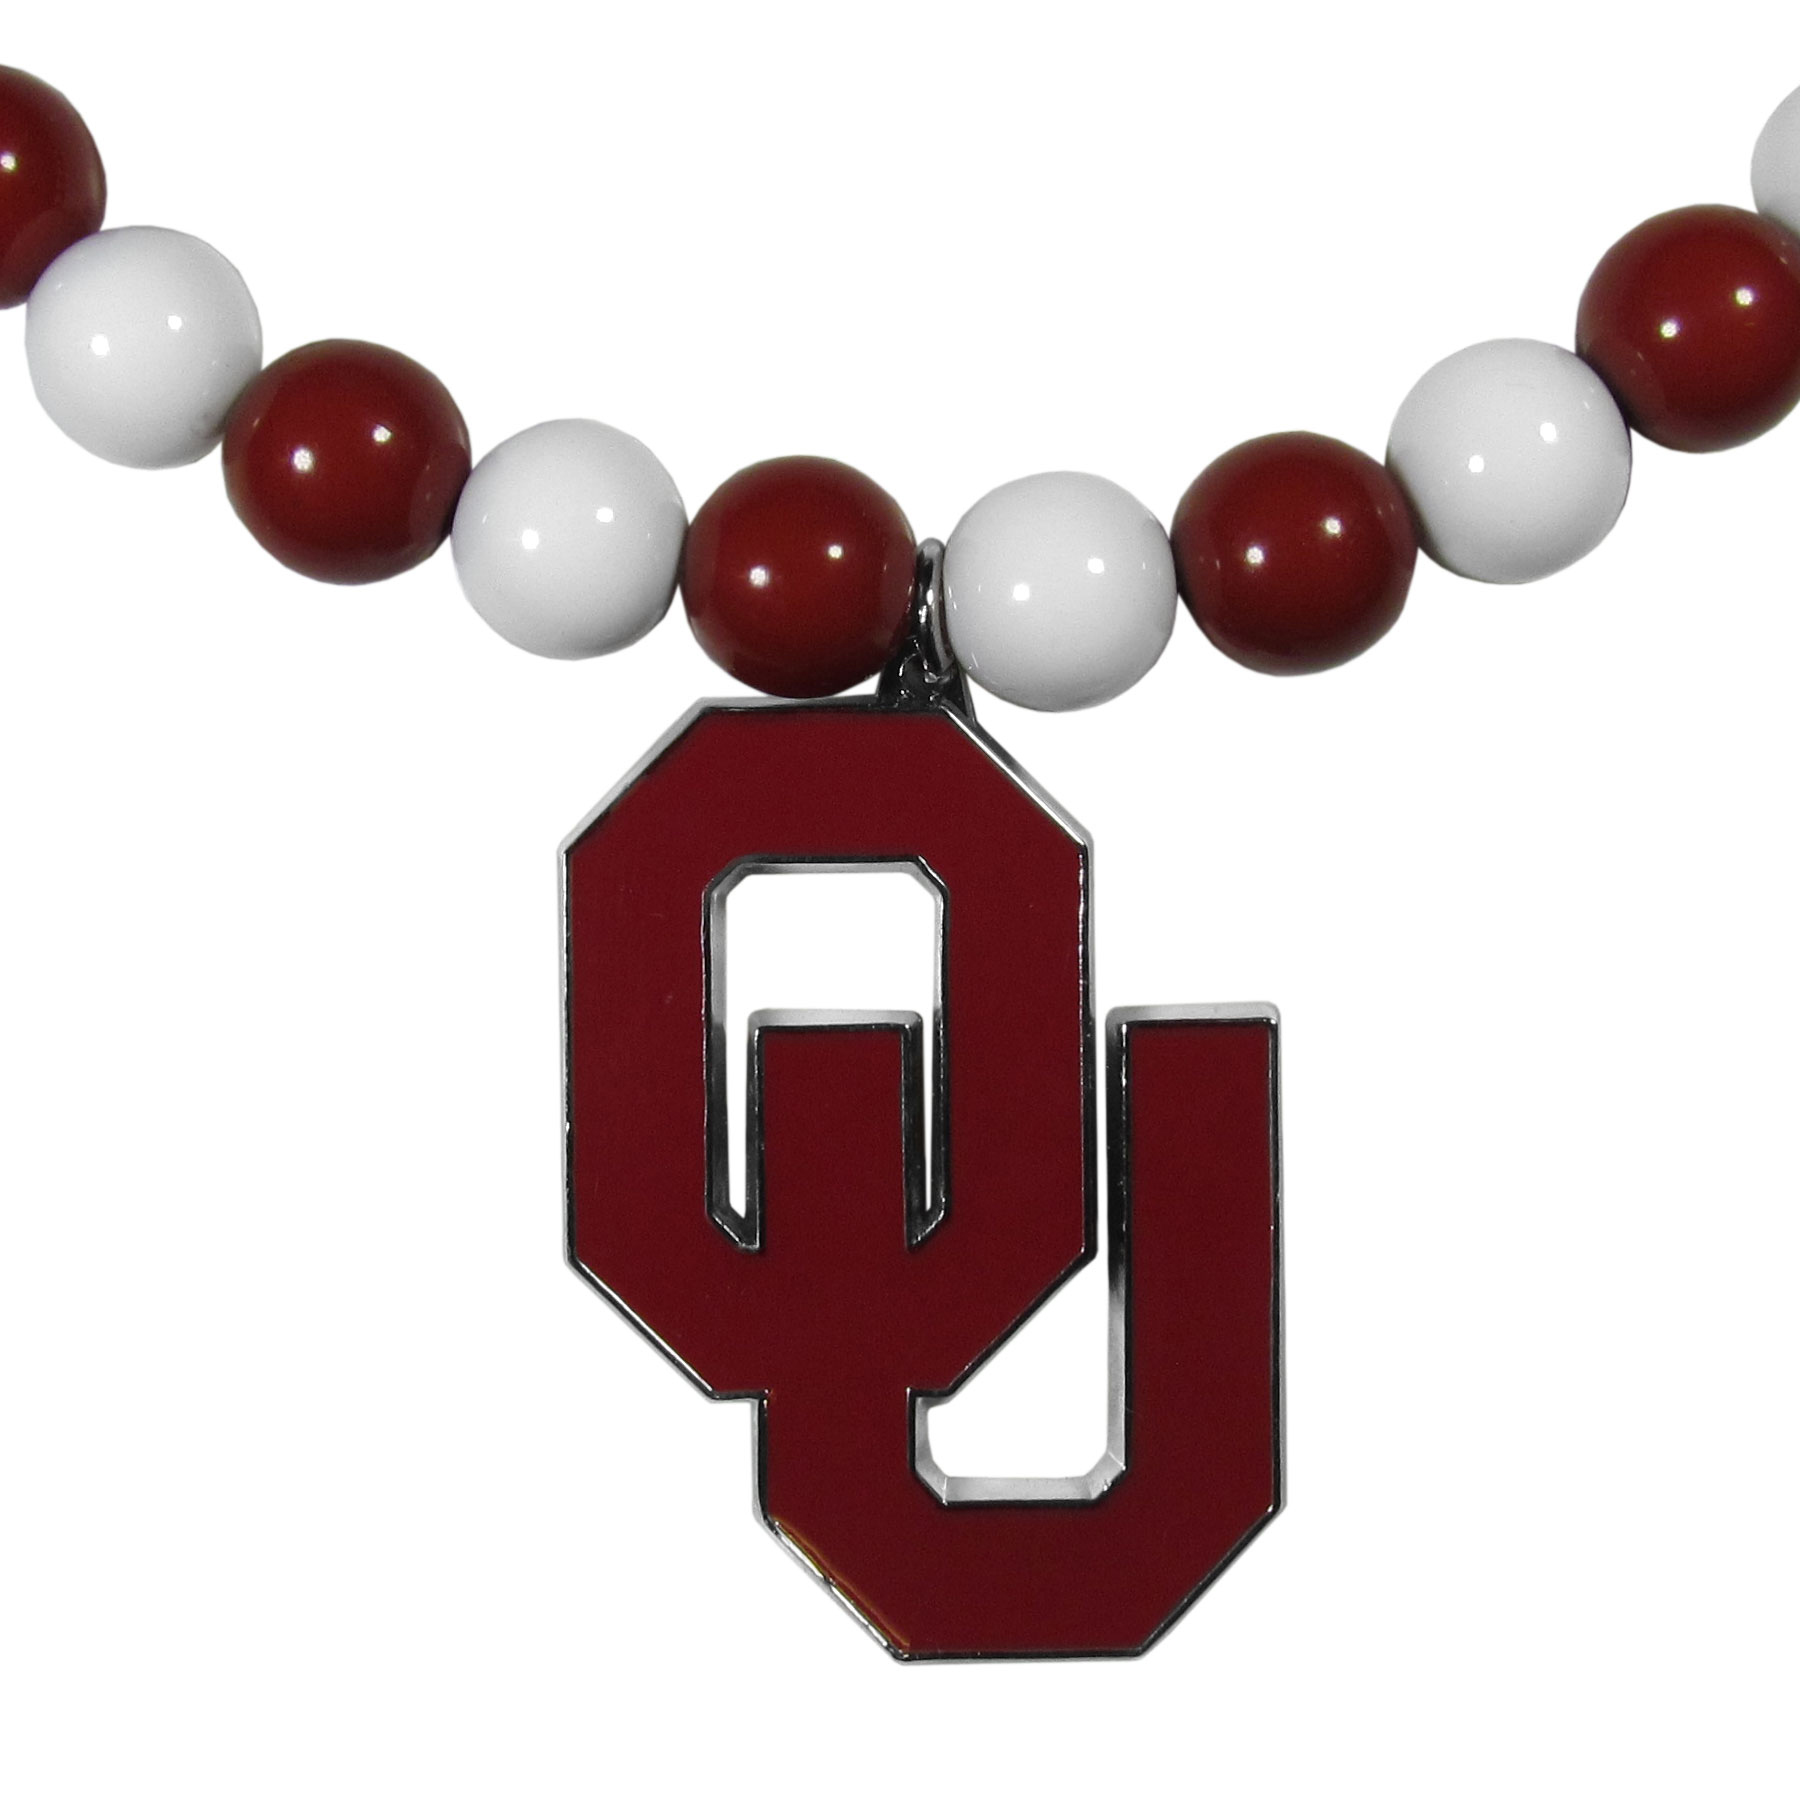 Oklahoma Sooners Fan Bead Necklace - Make a big statement with our fan bead necklaces! These brightly colored necklace have a 24 inch string of alternating colored beads with an extra large, high-polish Oklahoma Sooners pendant.